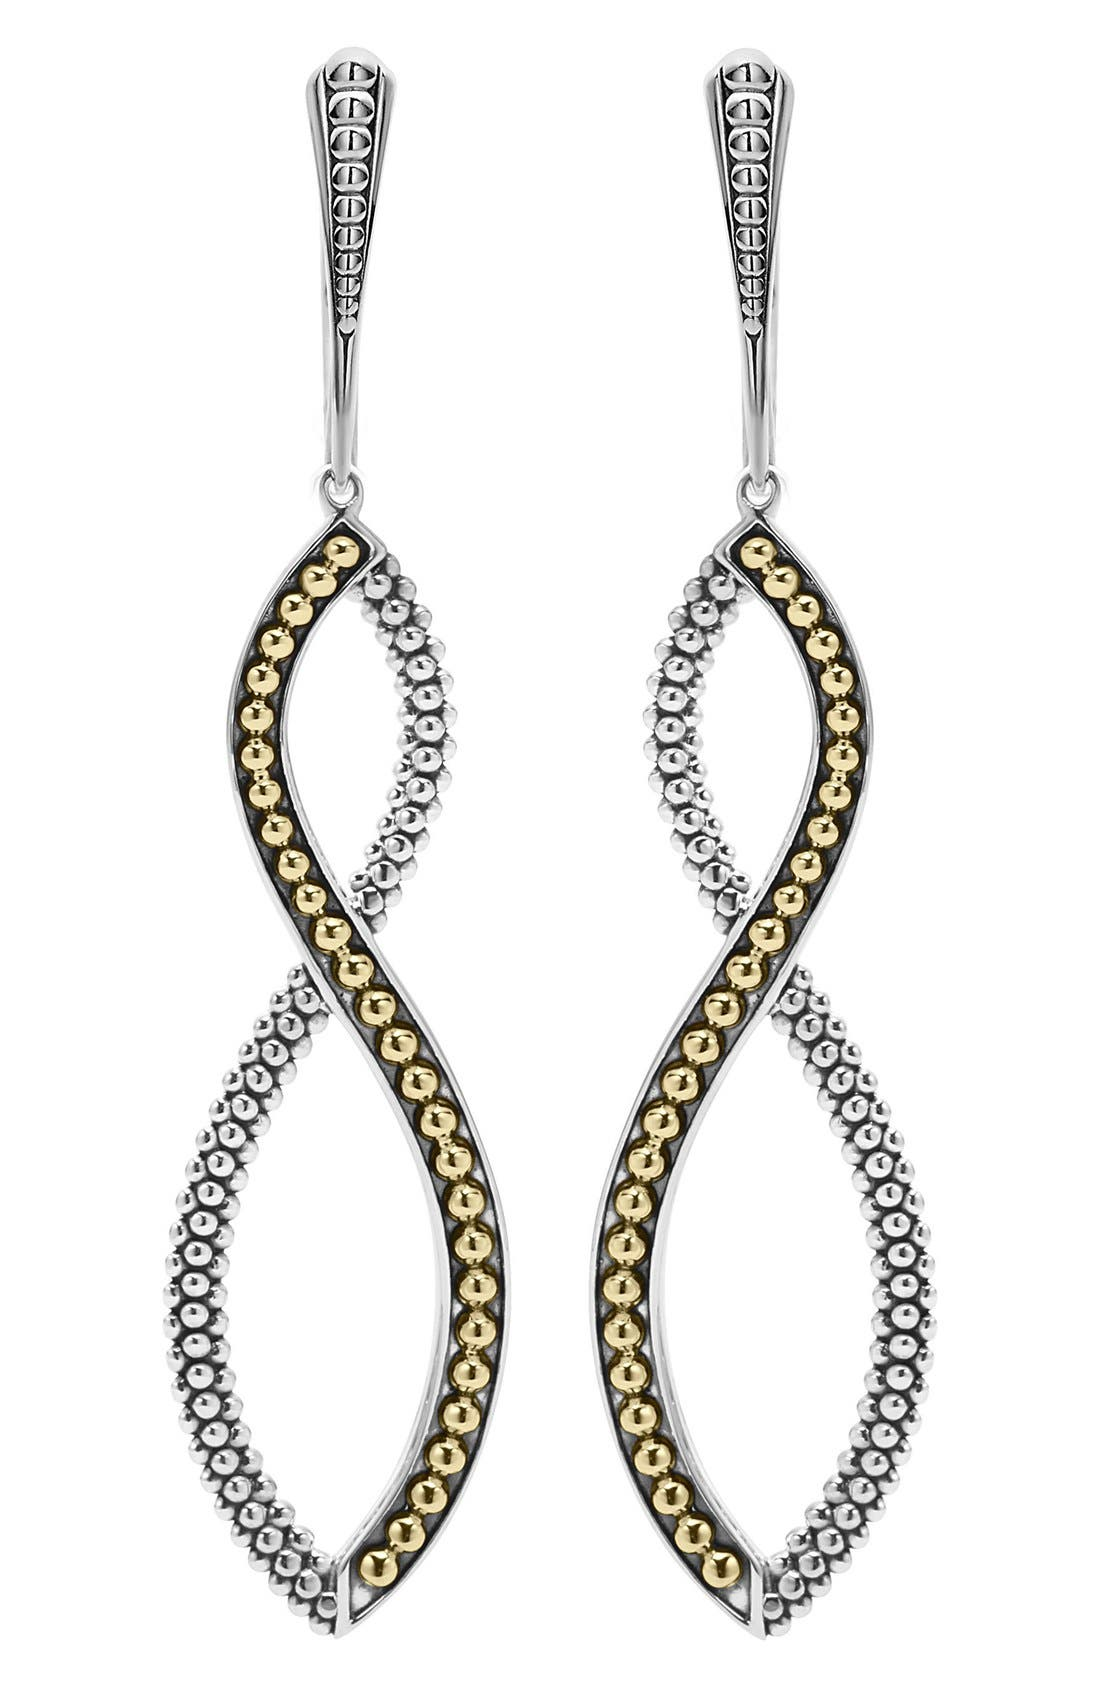 Infinity Twist Drop Earrings,                         Main,                         color, SILVER/ GOLD